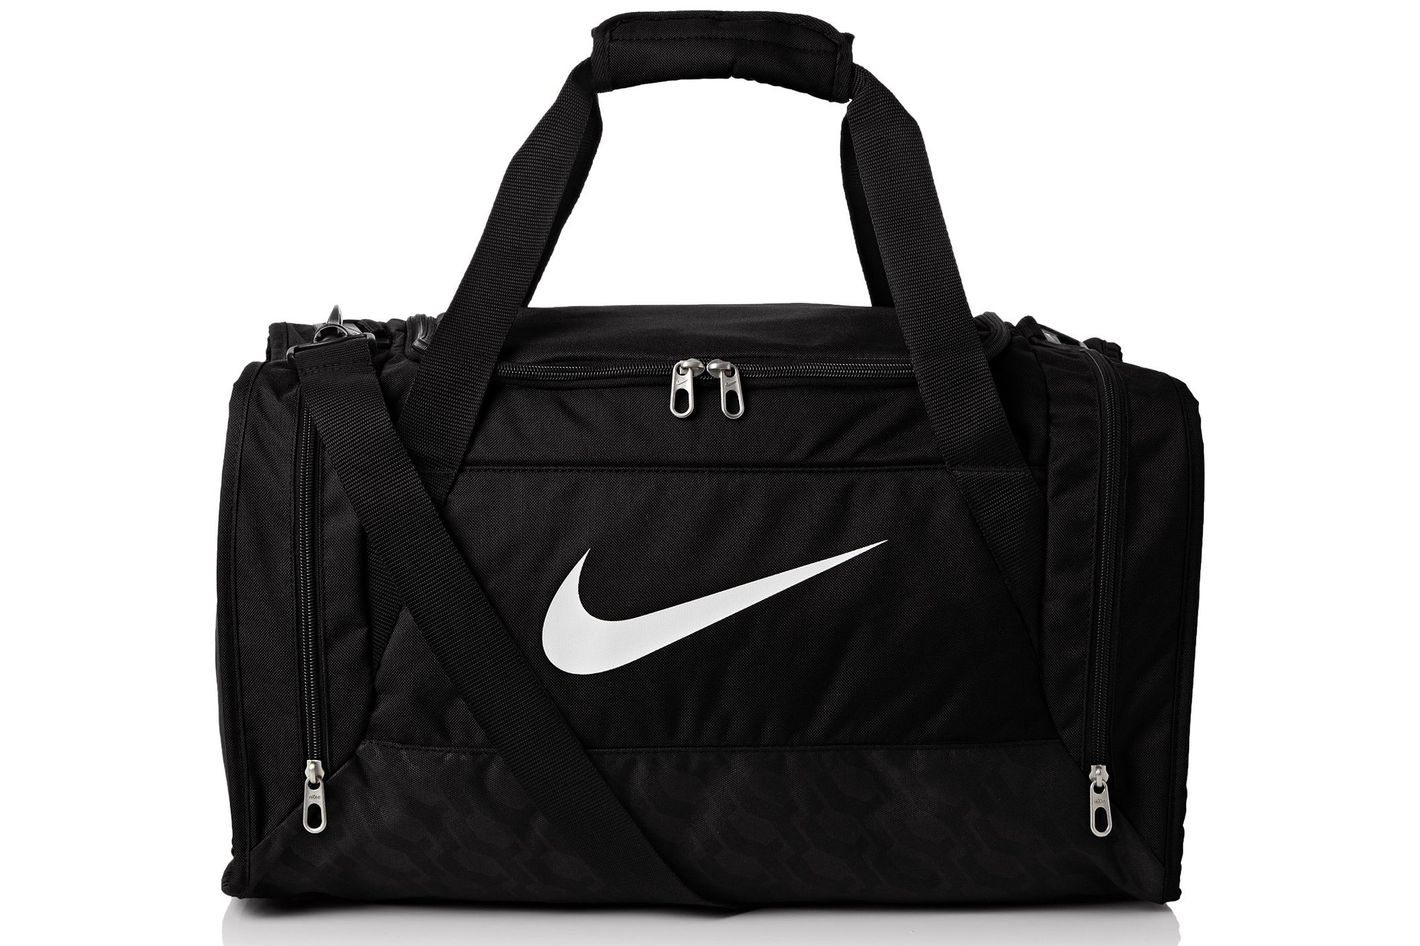 5a9c296fe45a Best Gym Bag for Every Kind of Exerciser